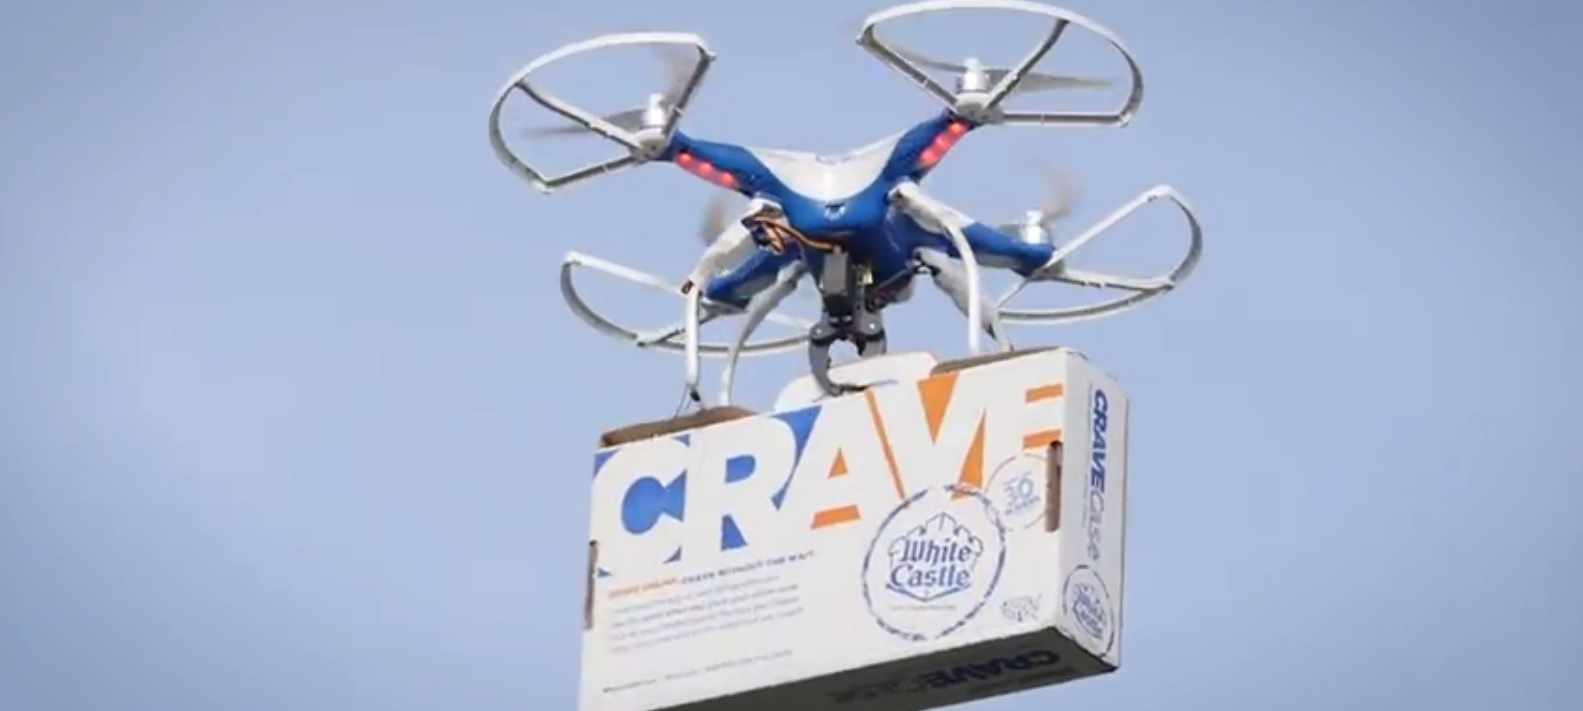 CRAVE COPTER_107262